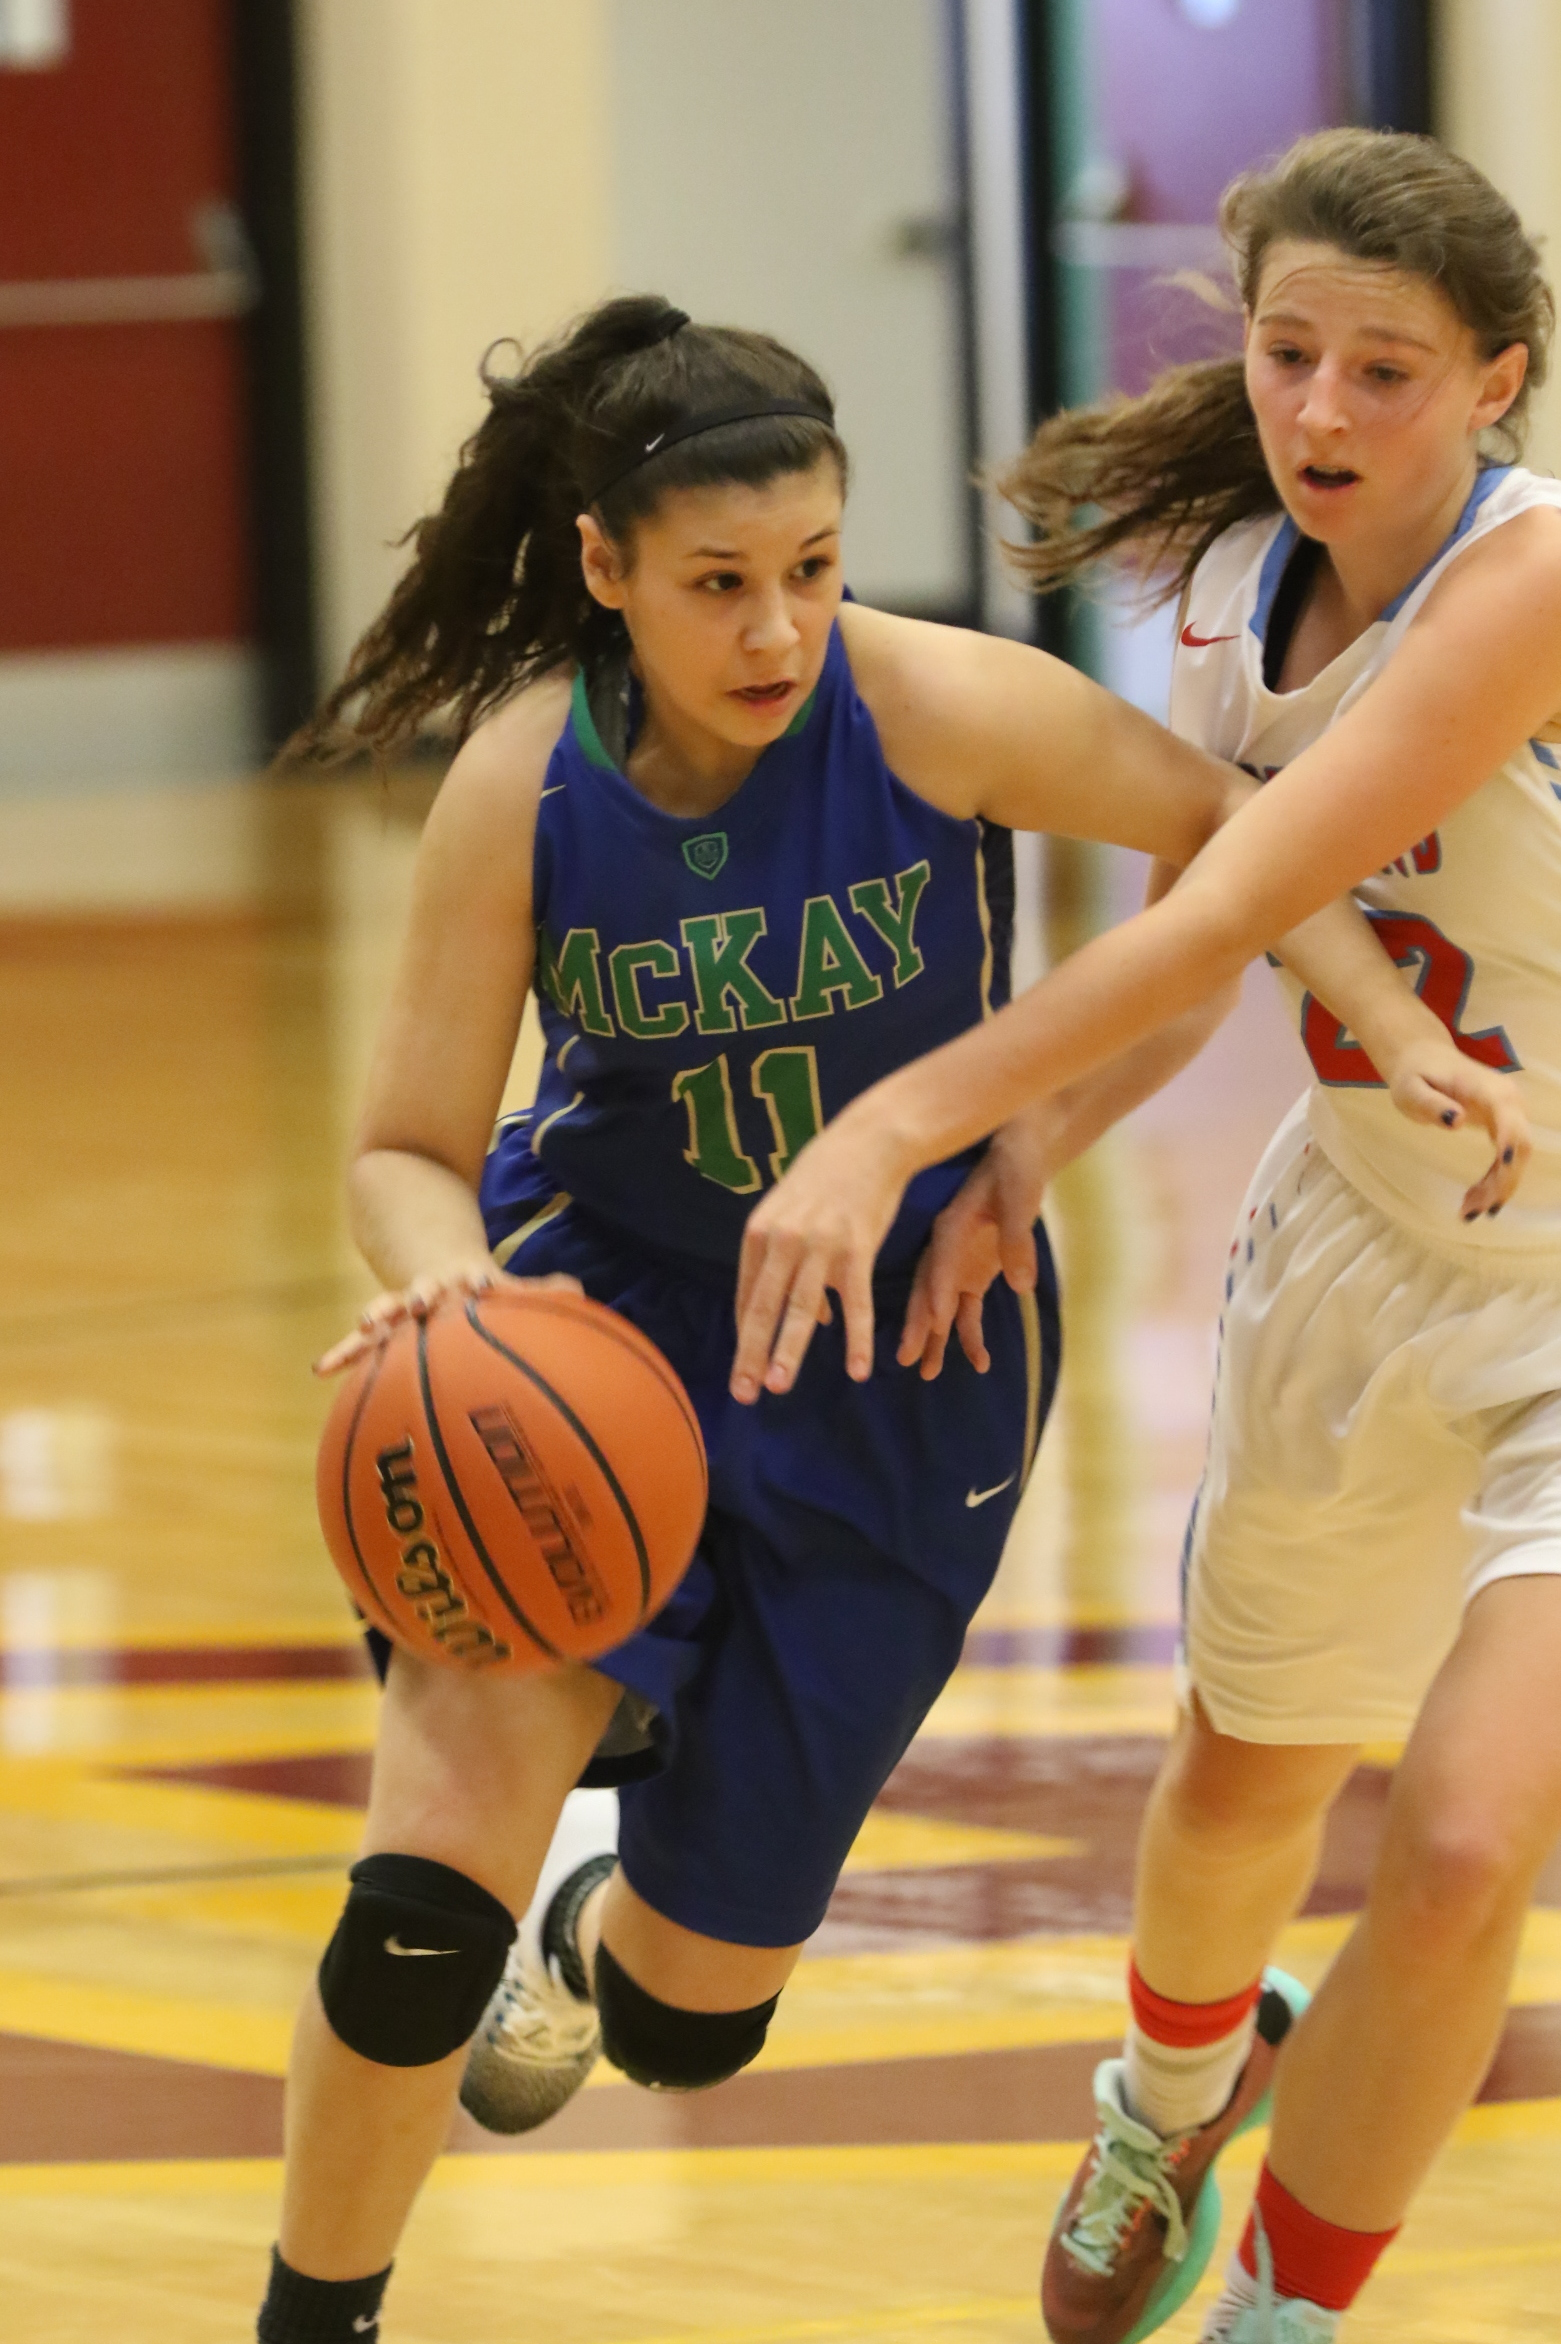 2016 - Leva drives to the hoop verses South Salem. Photo by Kent Brewer